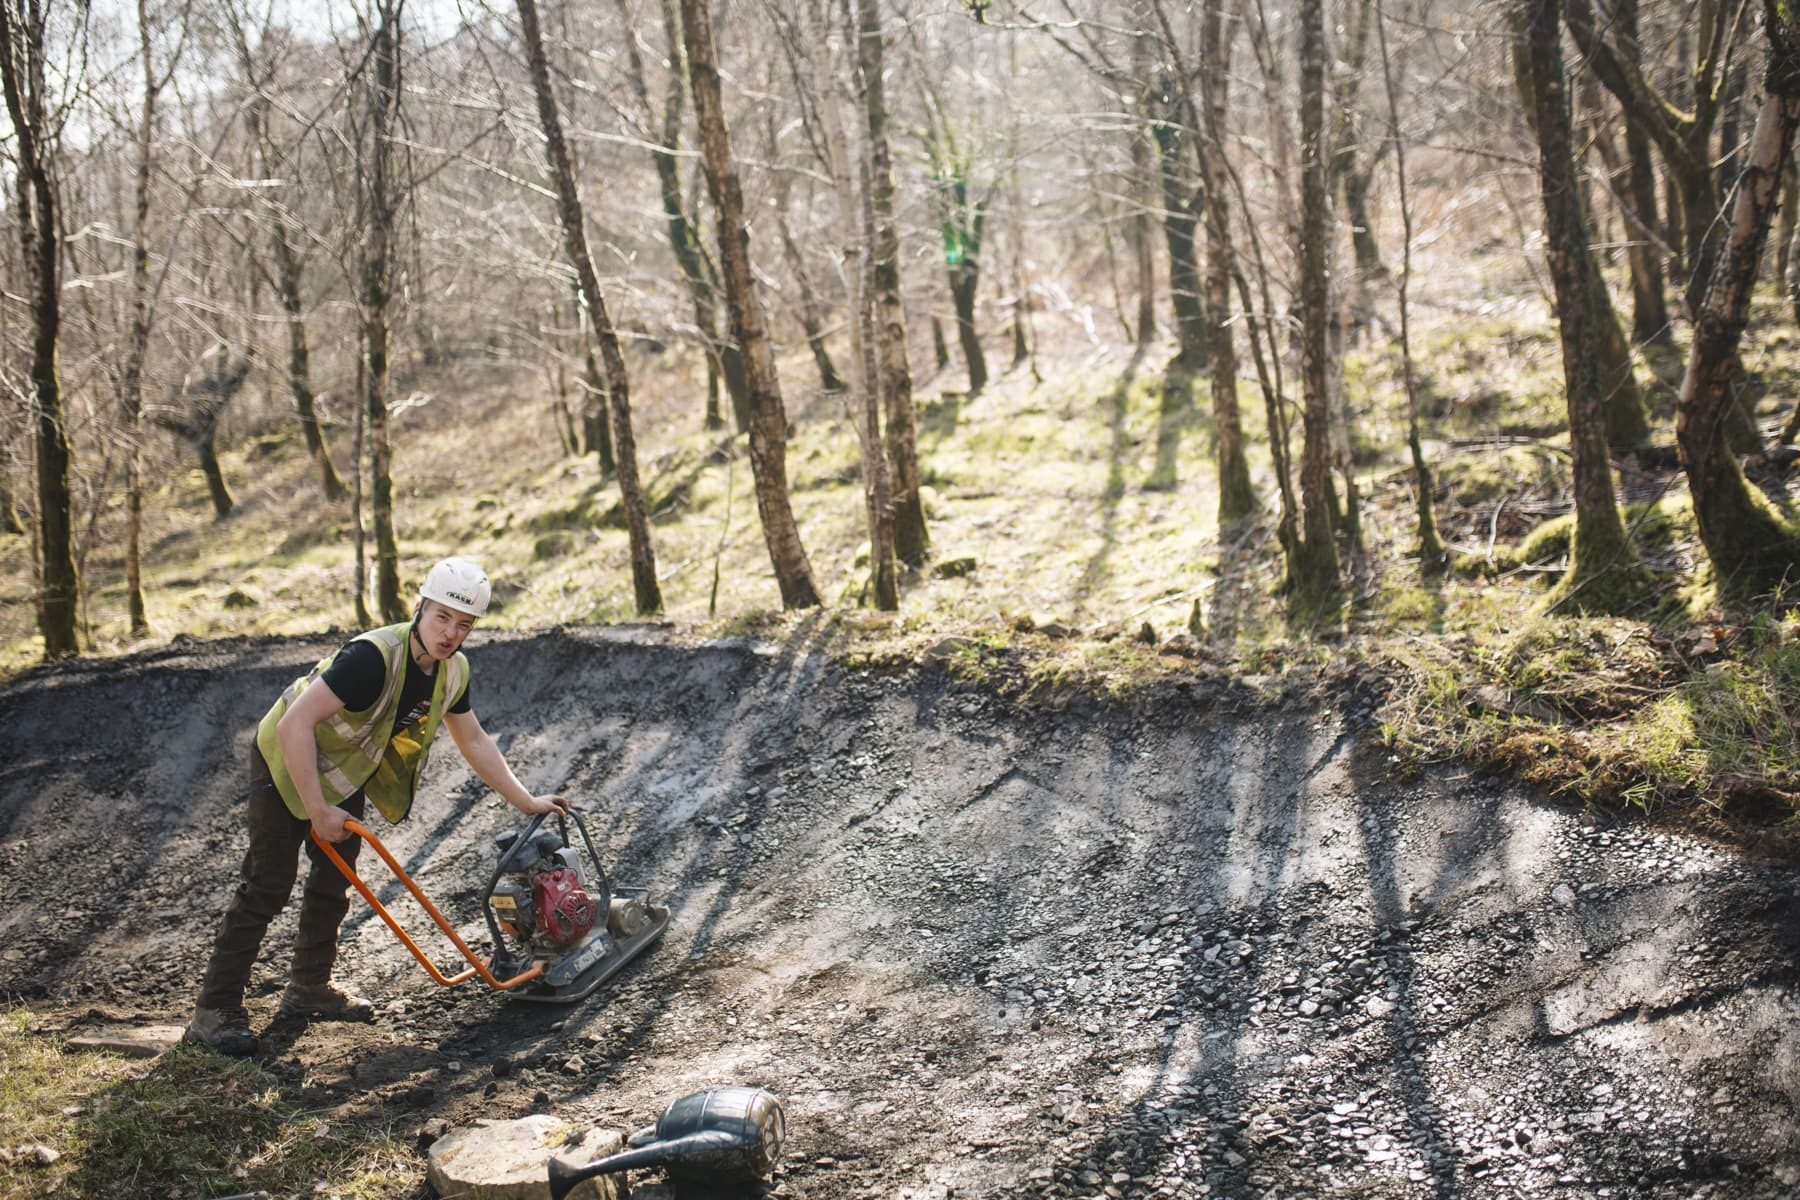 there's a lot more to running BikePark Wales than just keeping the trails smooth and buses flowing, so we headed to the centre and took a look behind the scenes on a typical Friday just as spring started to show.